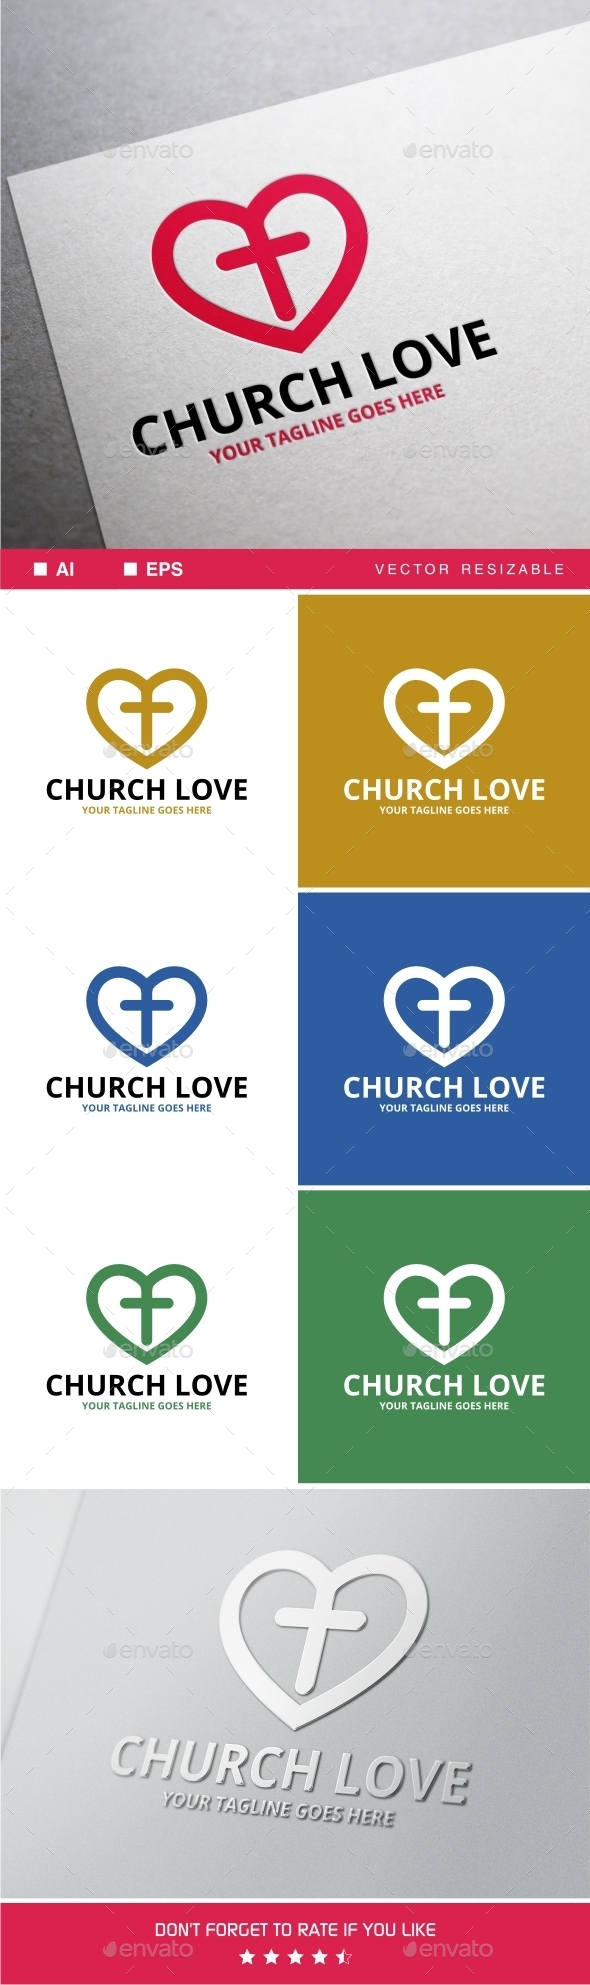 GraphicRiver Church Love Logo 11770919